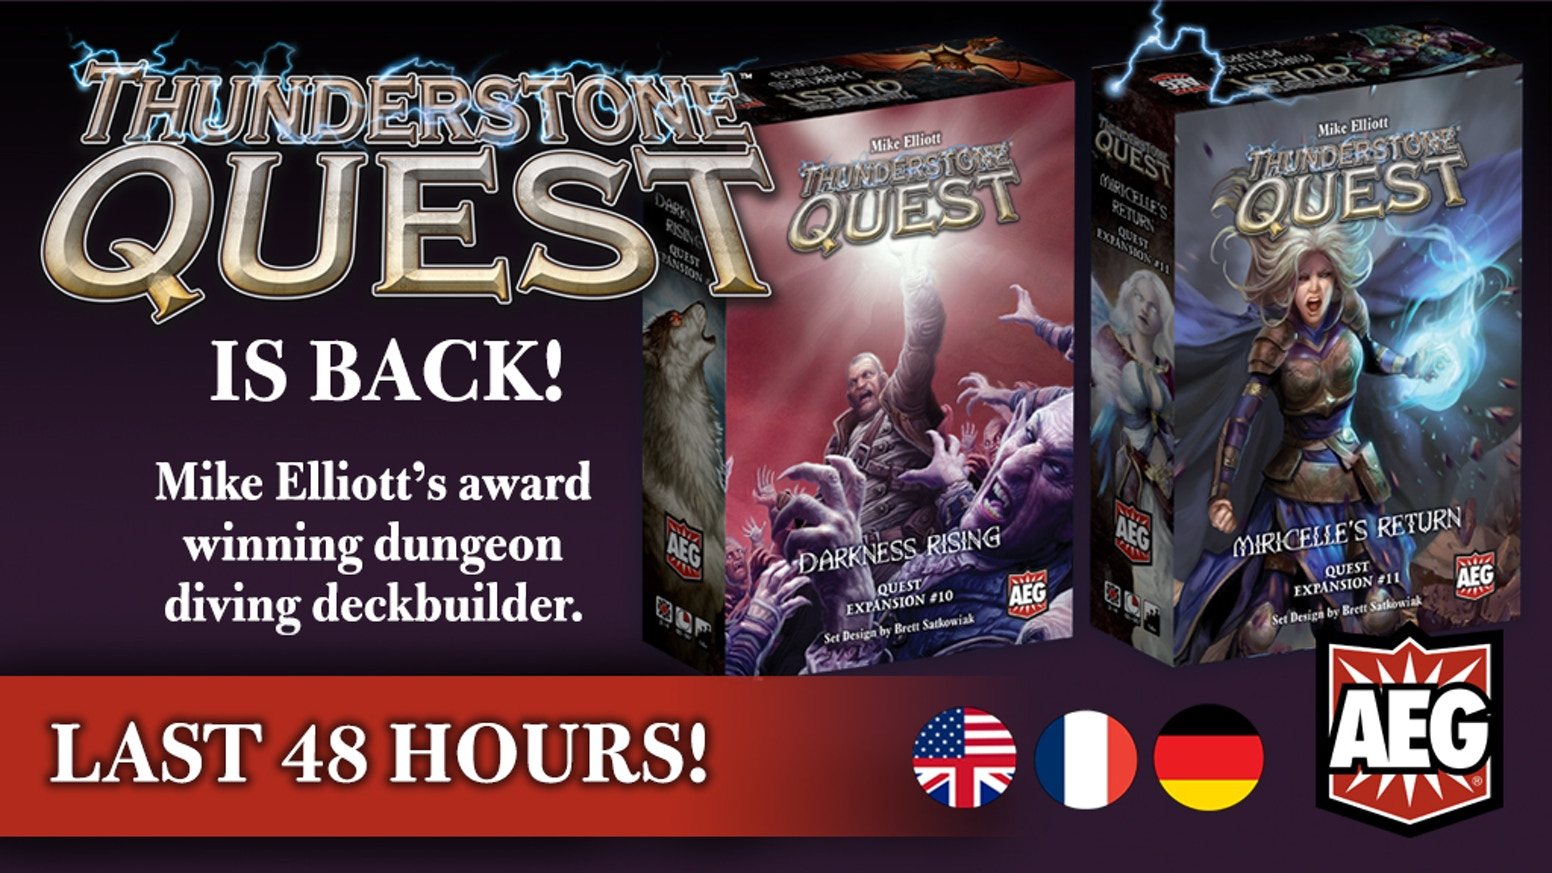 Two amazing new Quests for AEG's award winning deck builder, Thunderstone Quest! Vampires, Scions, and the epic return of Miricelle!